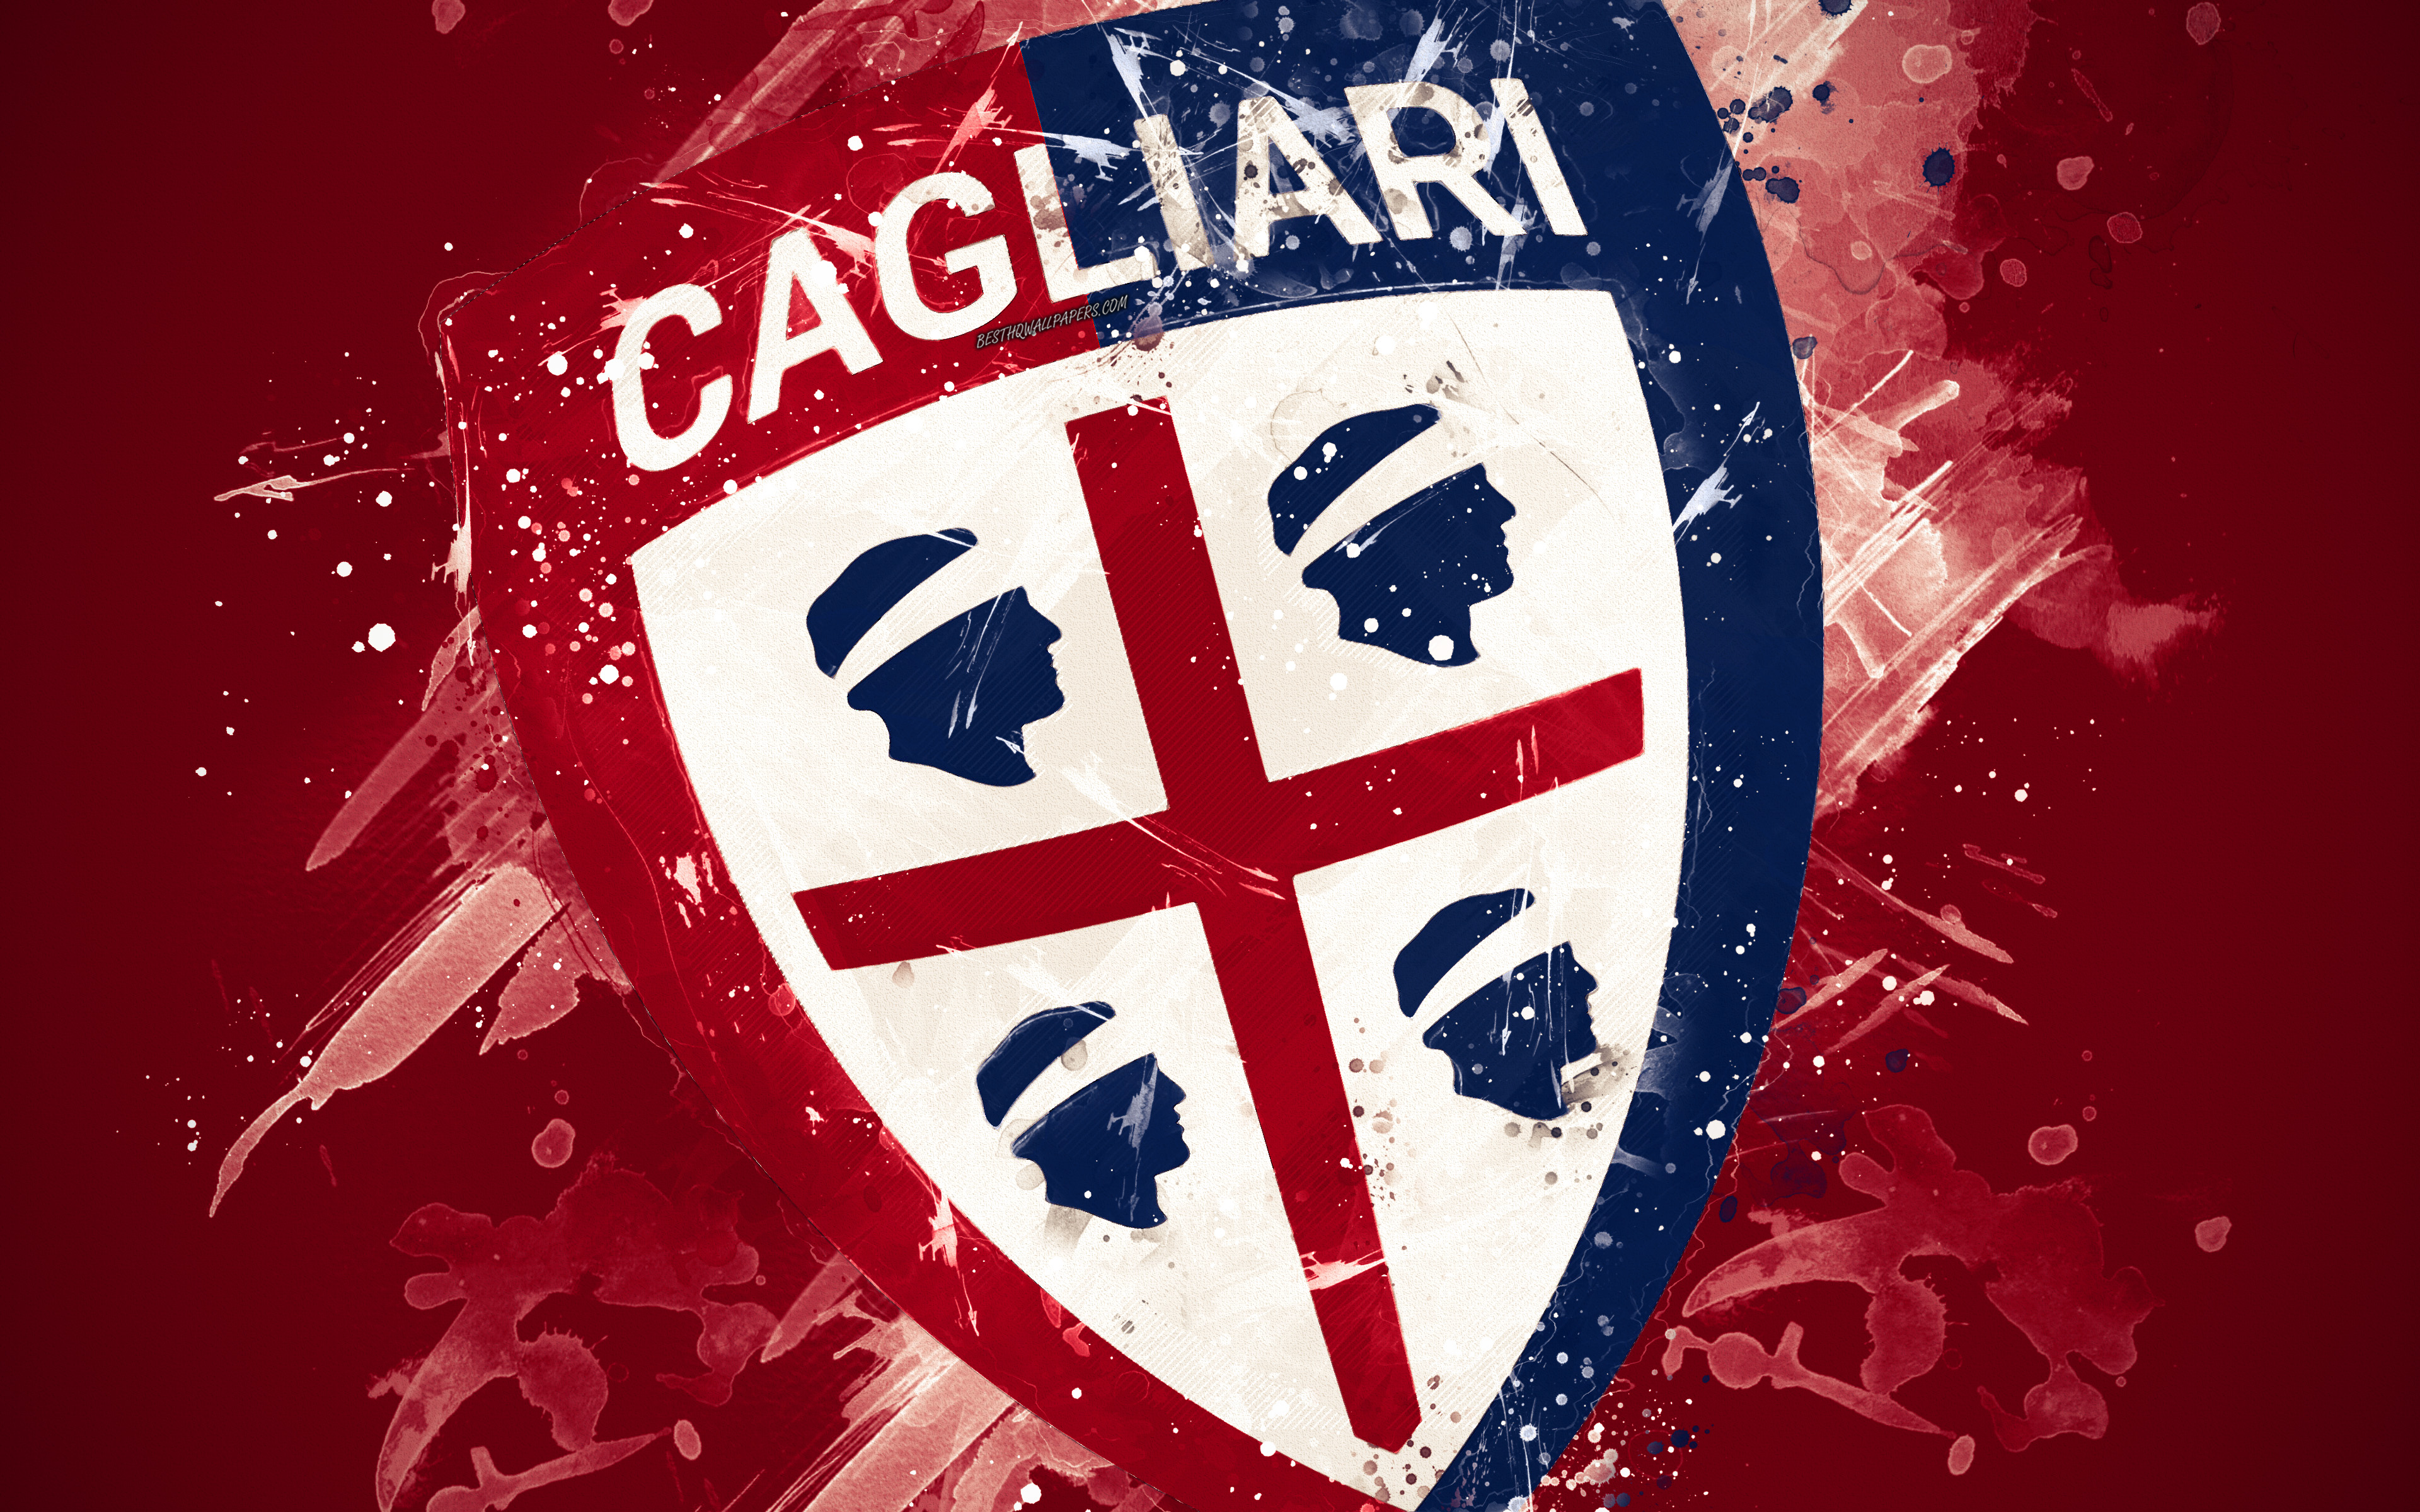 10 Reasons why you should support Cagliari | Maurizio Pittau